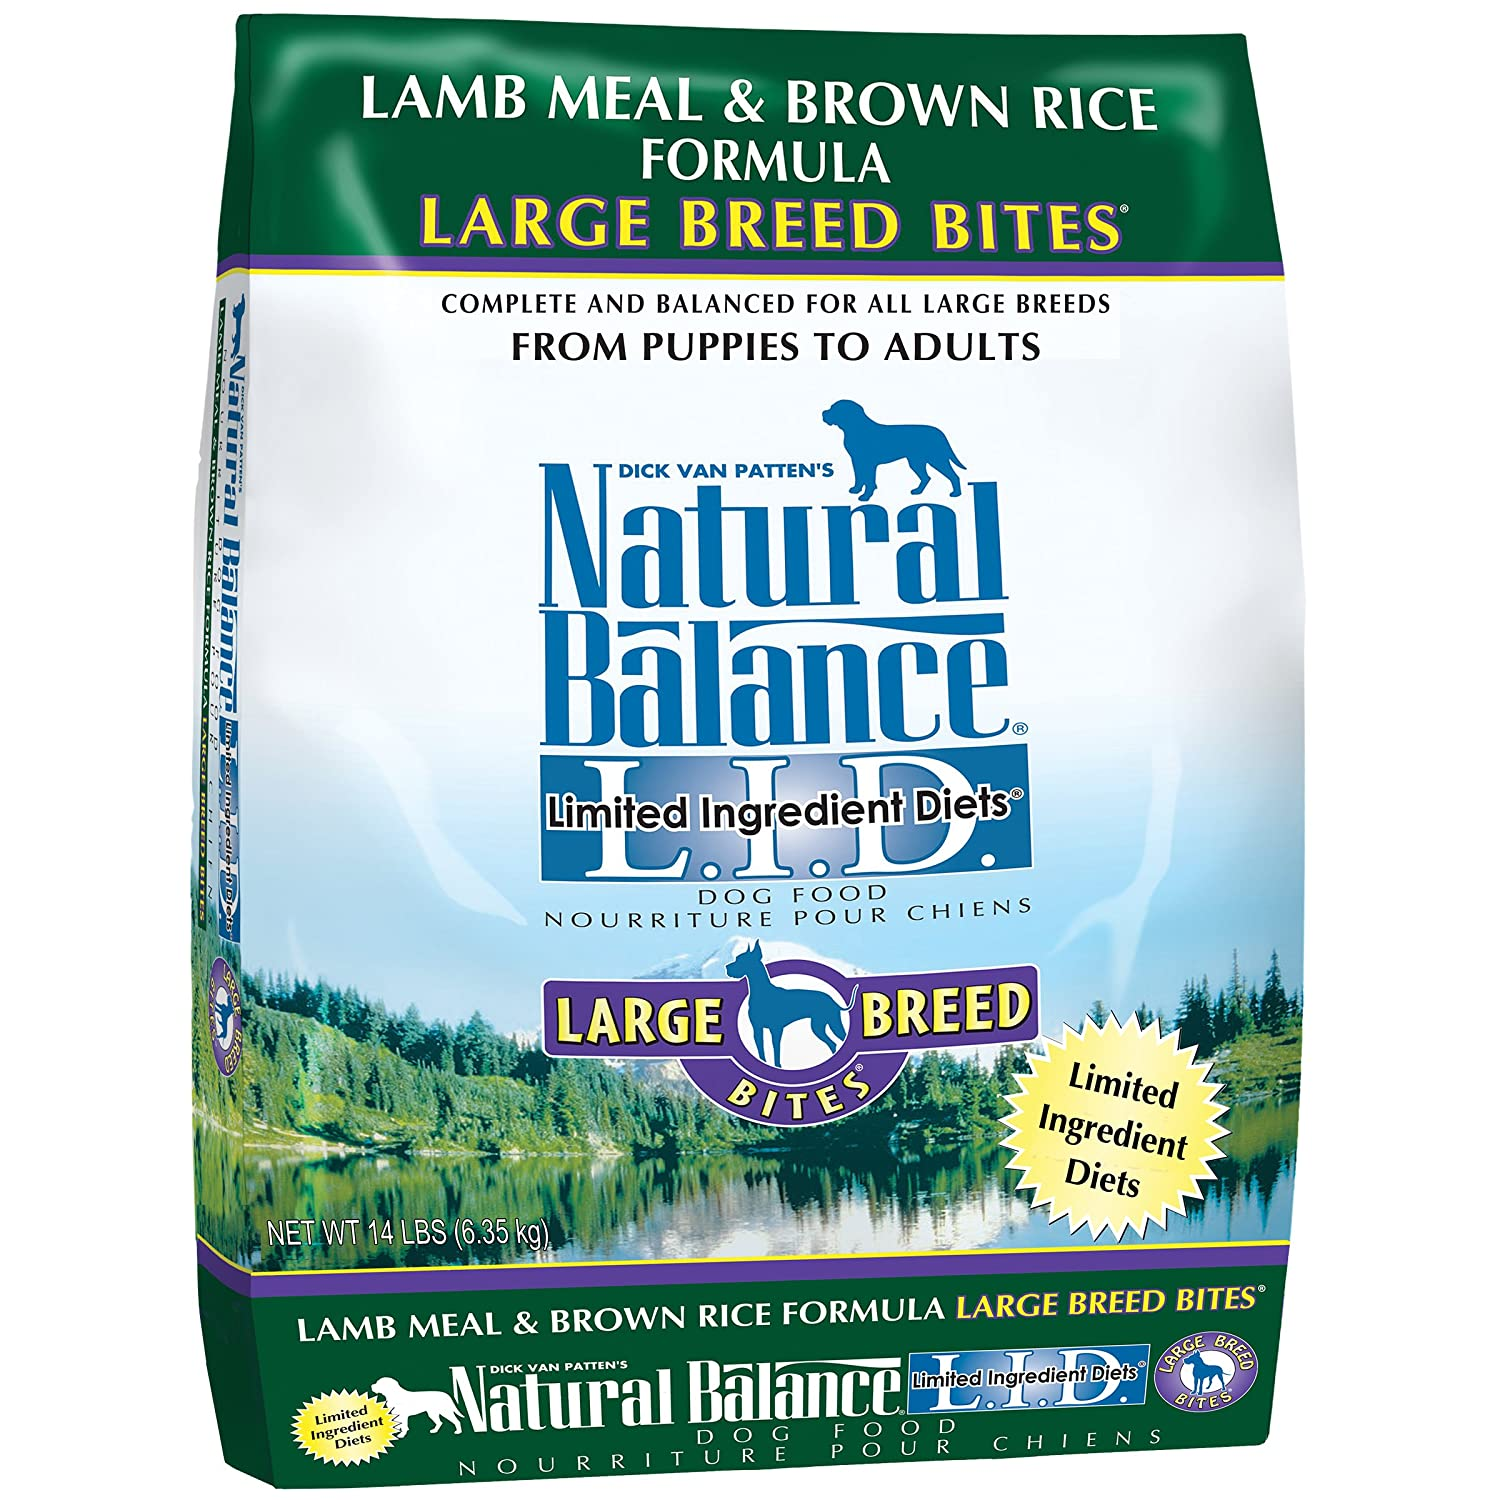 Amazon.com: Natural Balance Large Breed Bites L.I.D. Limited ... | Natural Balance Dog Food Allergies